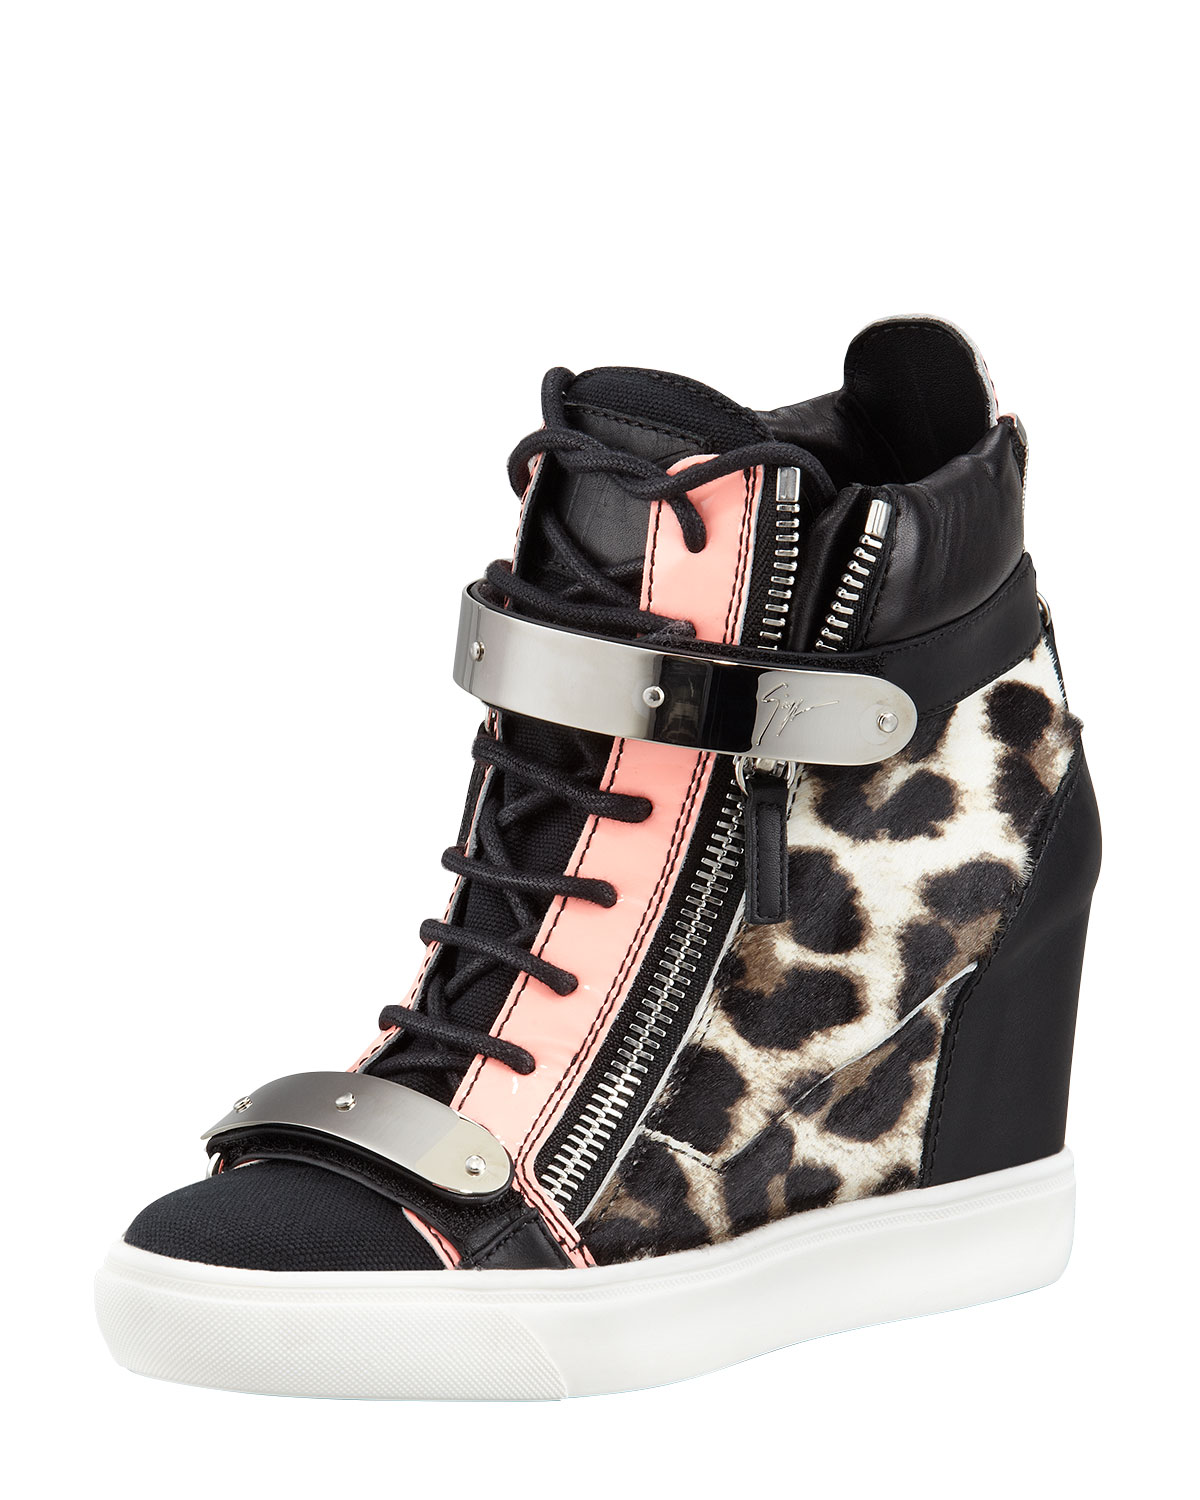 a026aed88f393 Gallery. Previously sold at: Bergdorf Goodman · Women's Wedge Sneakers ...